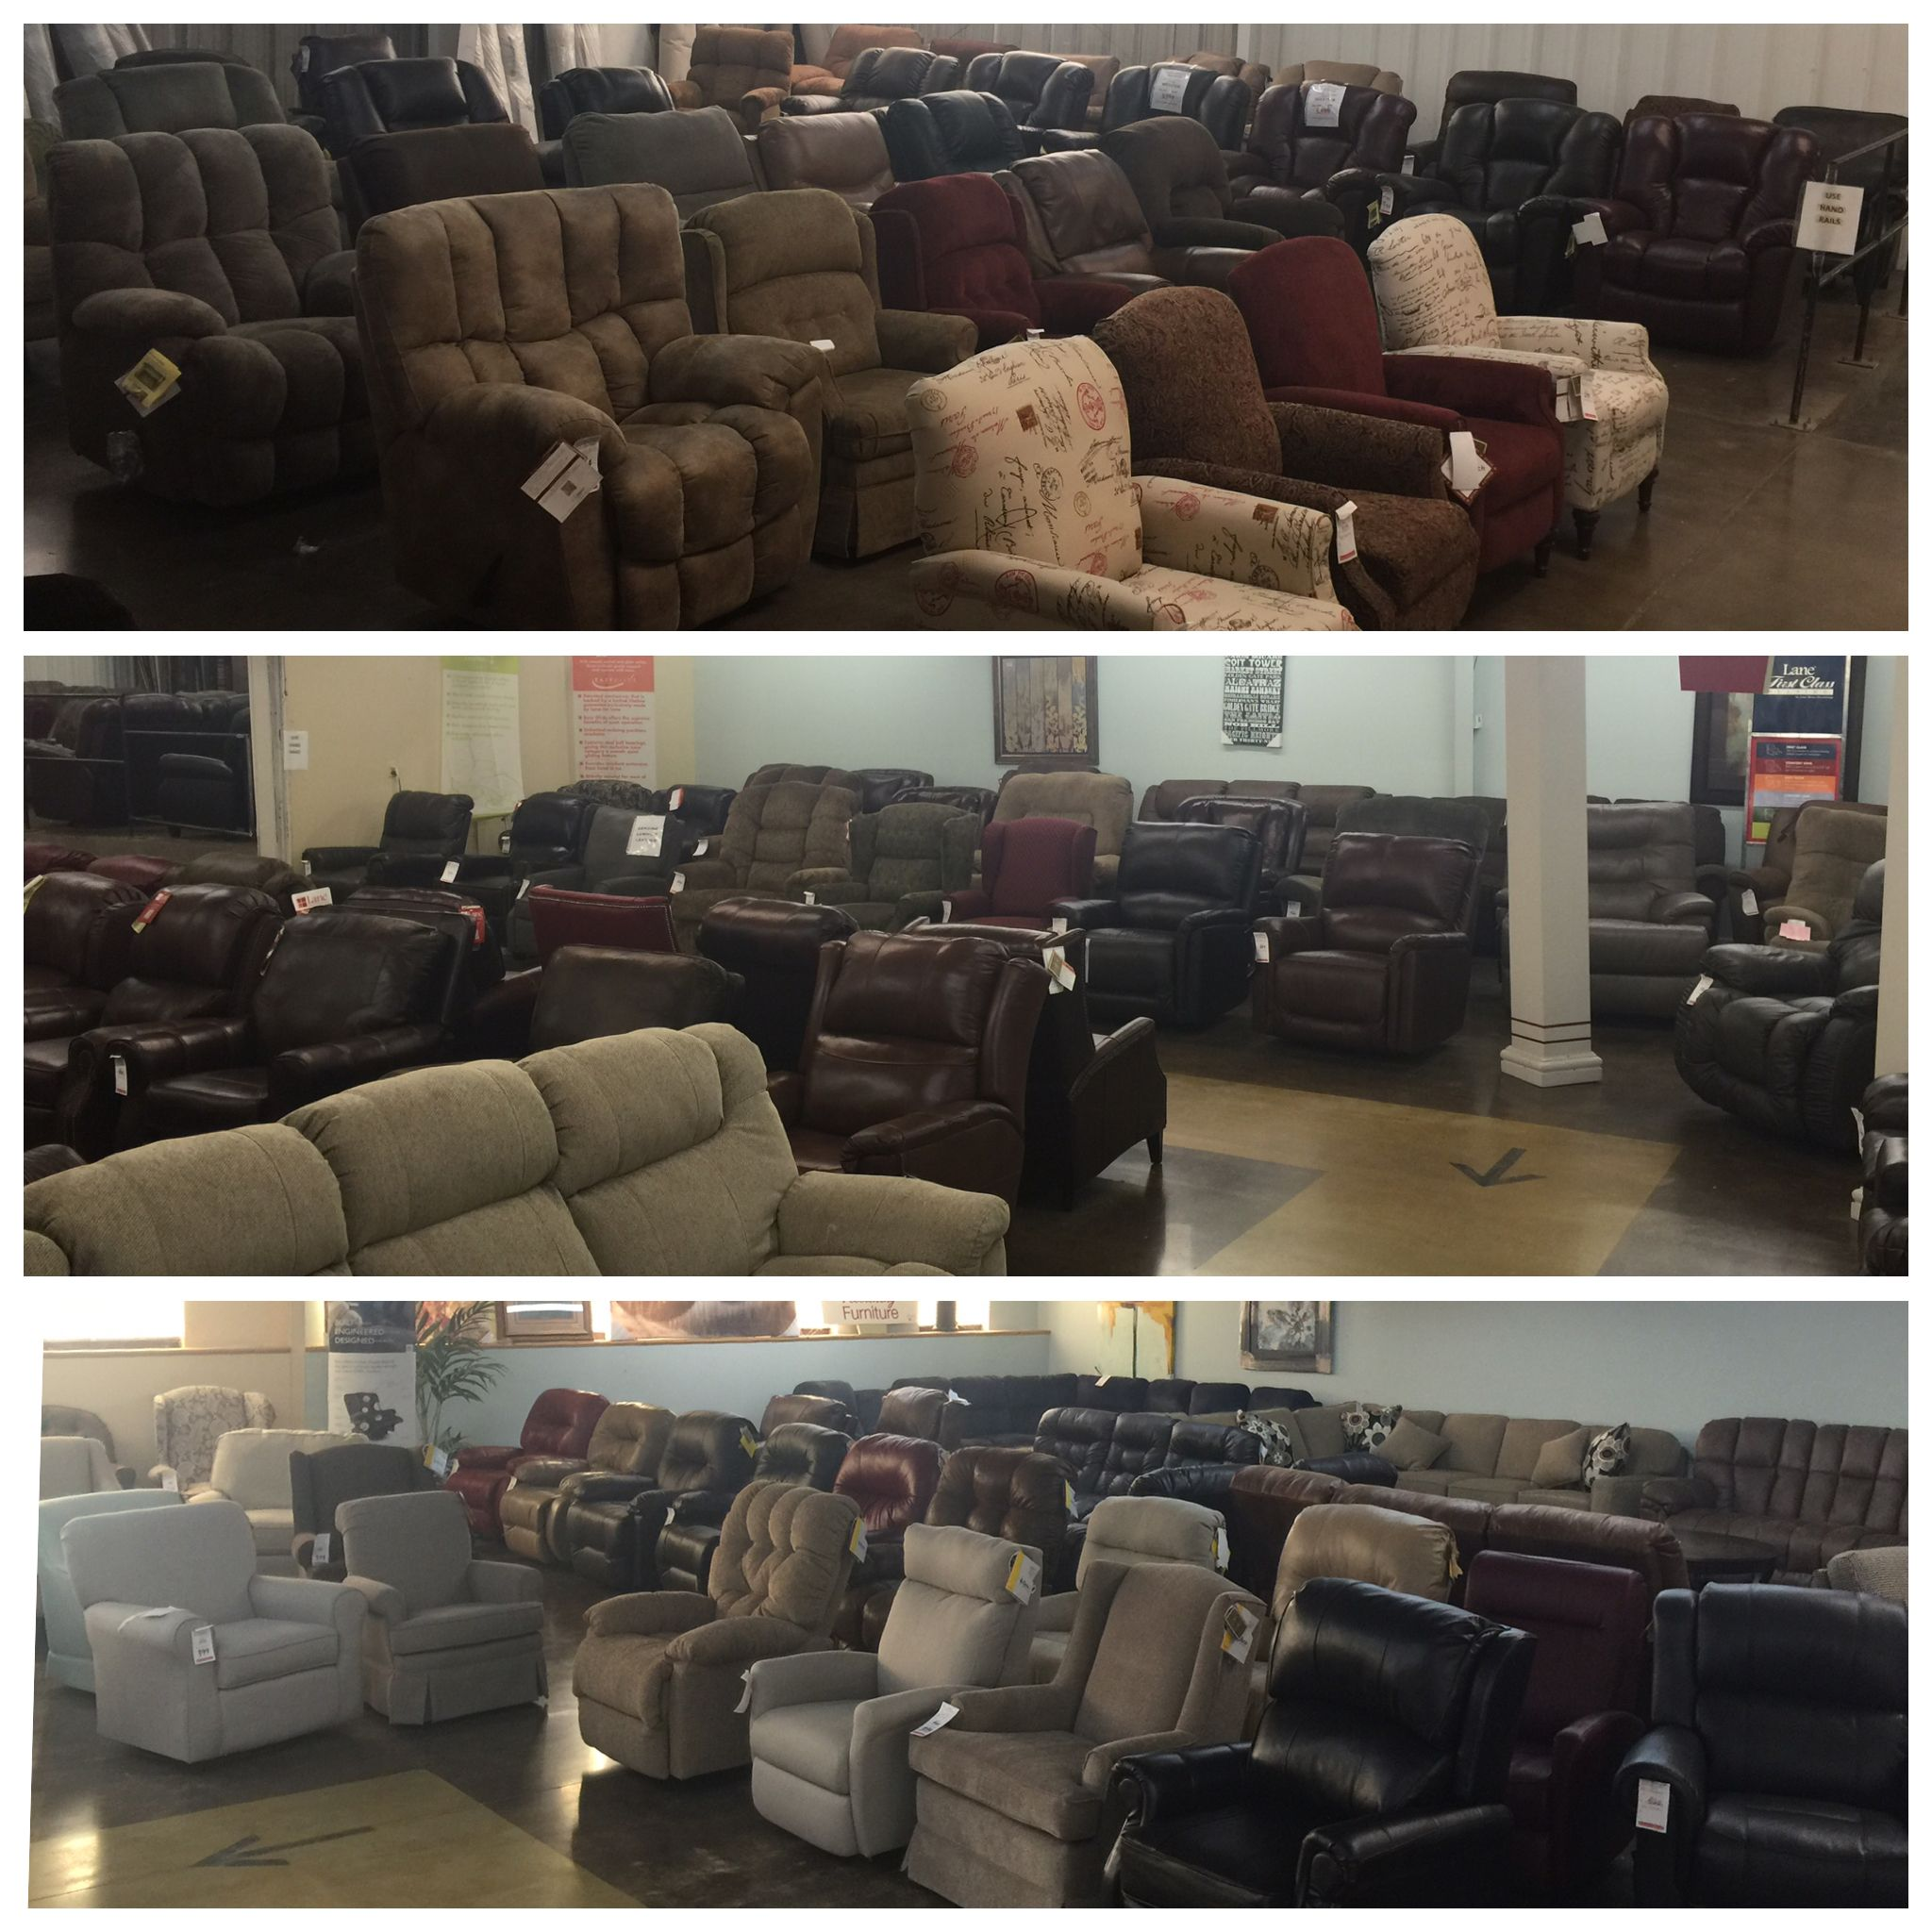 Genial Akins Furniture Has 3 Rooms Of Recliners Of Every Size, Shape And Color